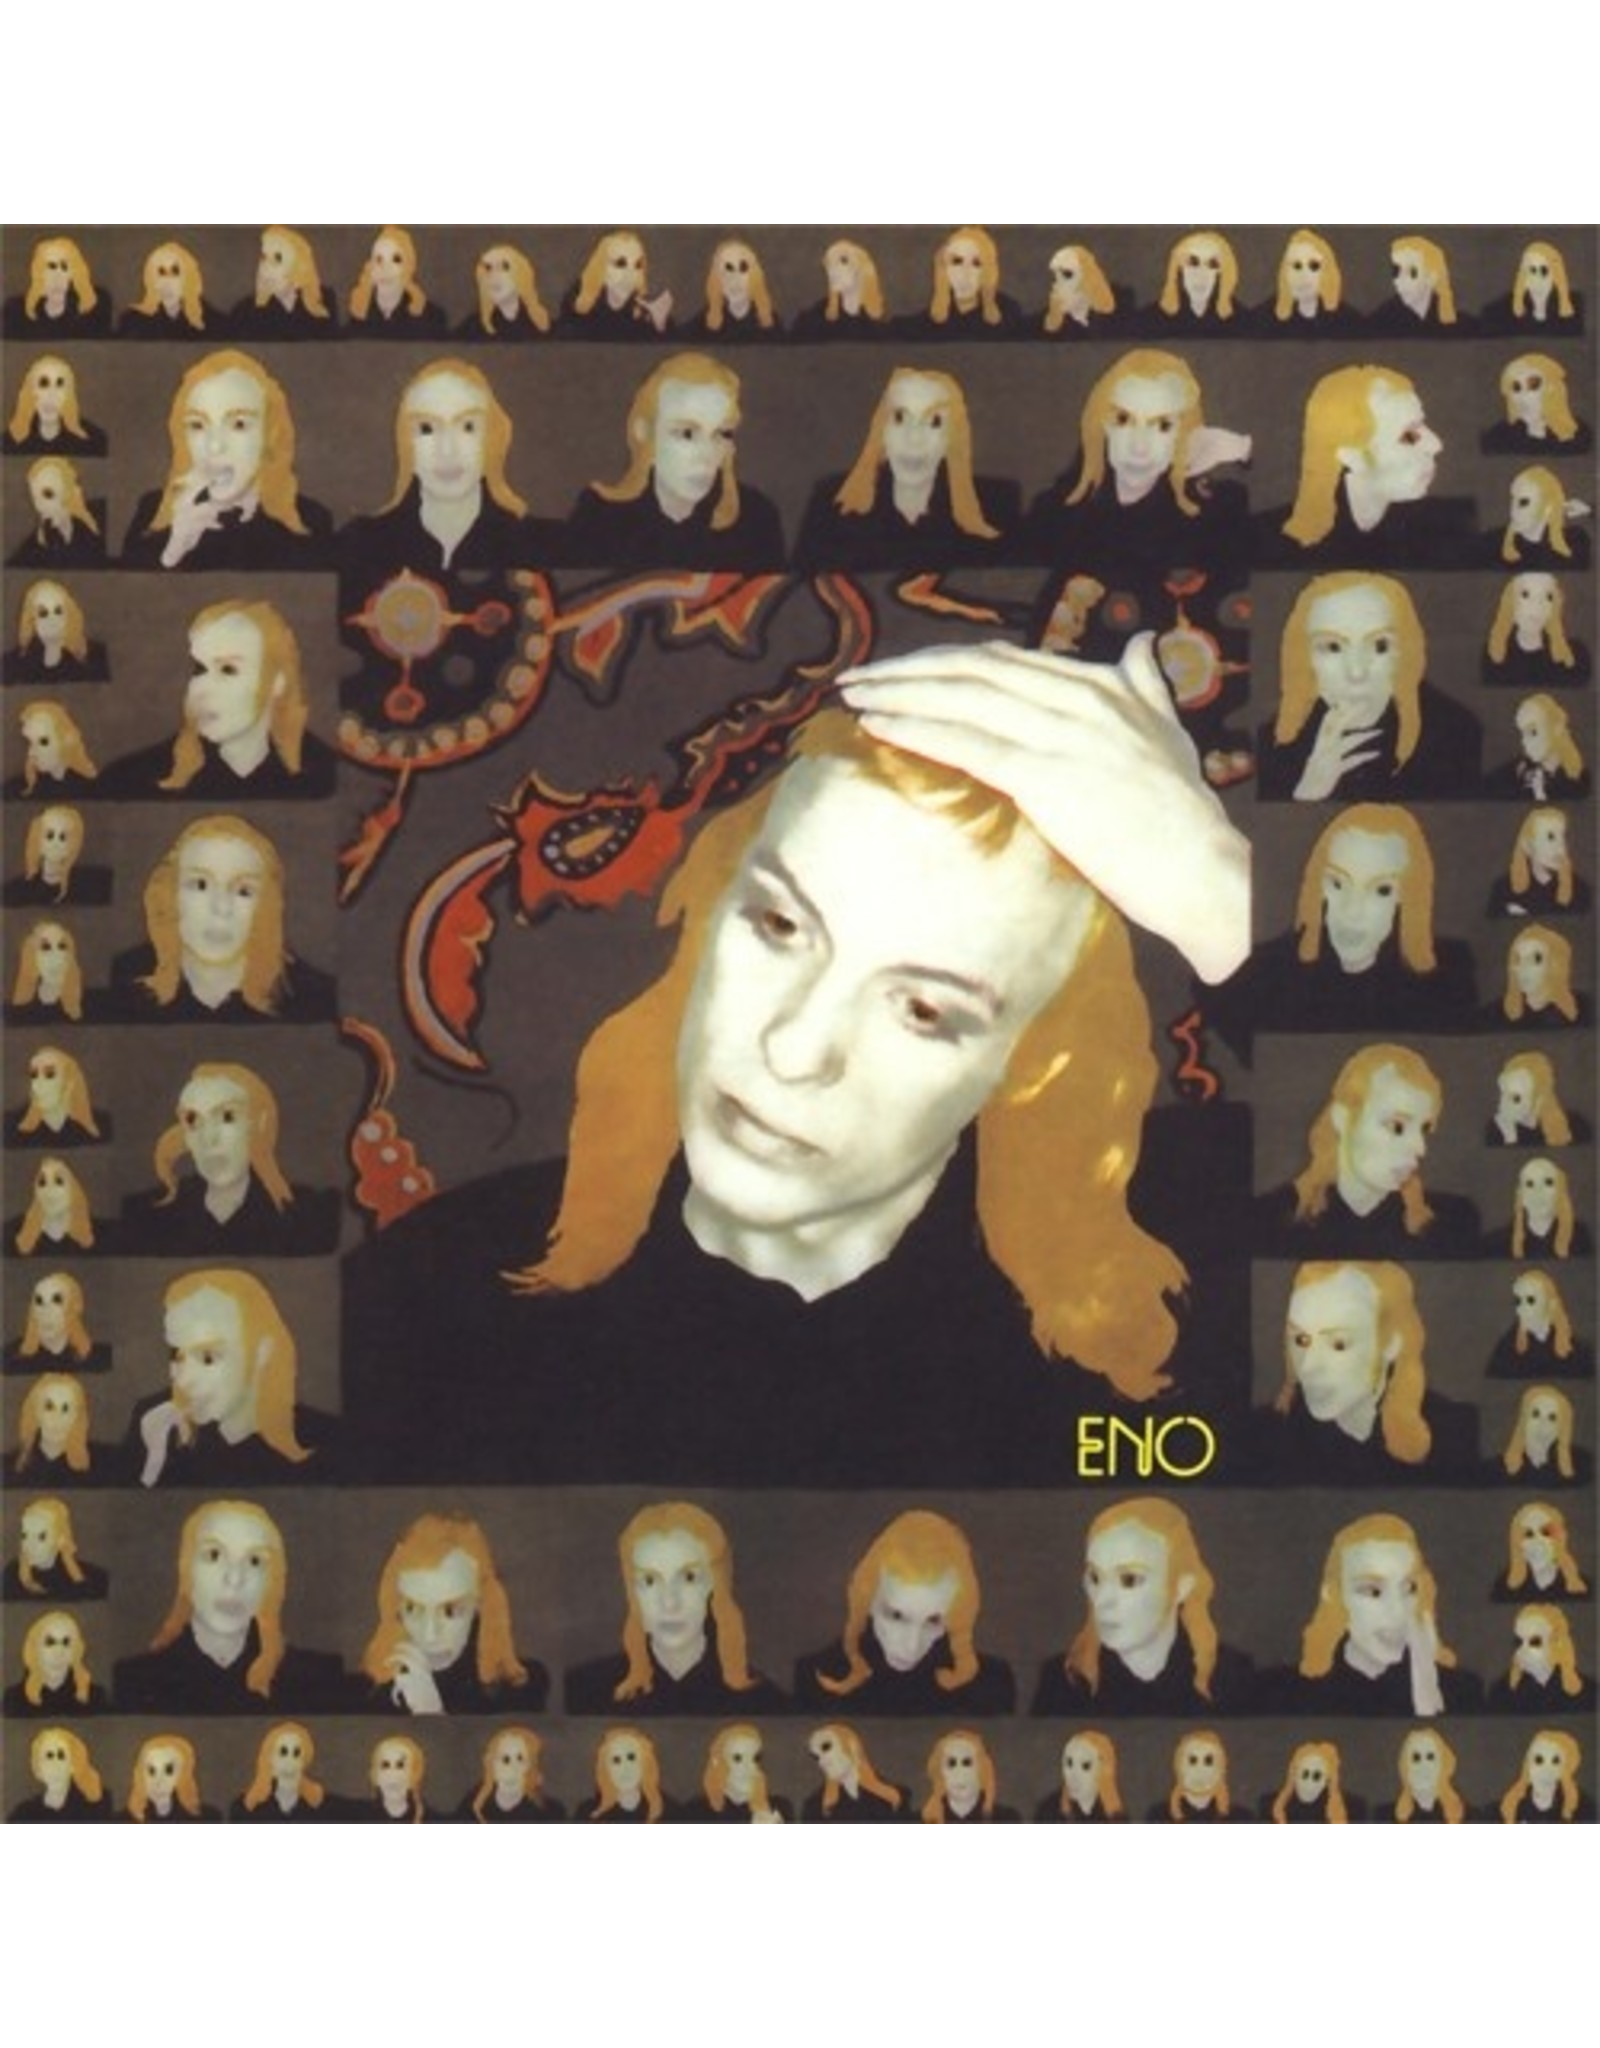 New Vinyl Brian Eno - Taking Tiger Mountain (By Strategy) 2LP